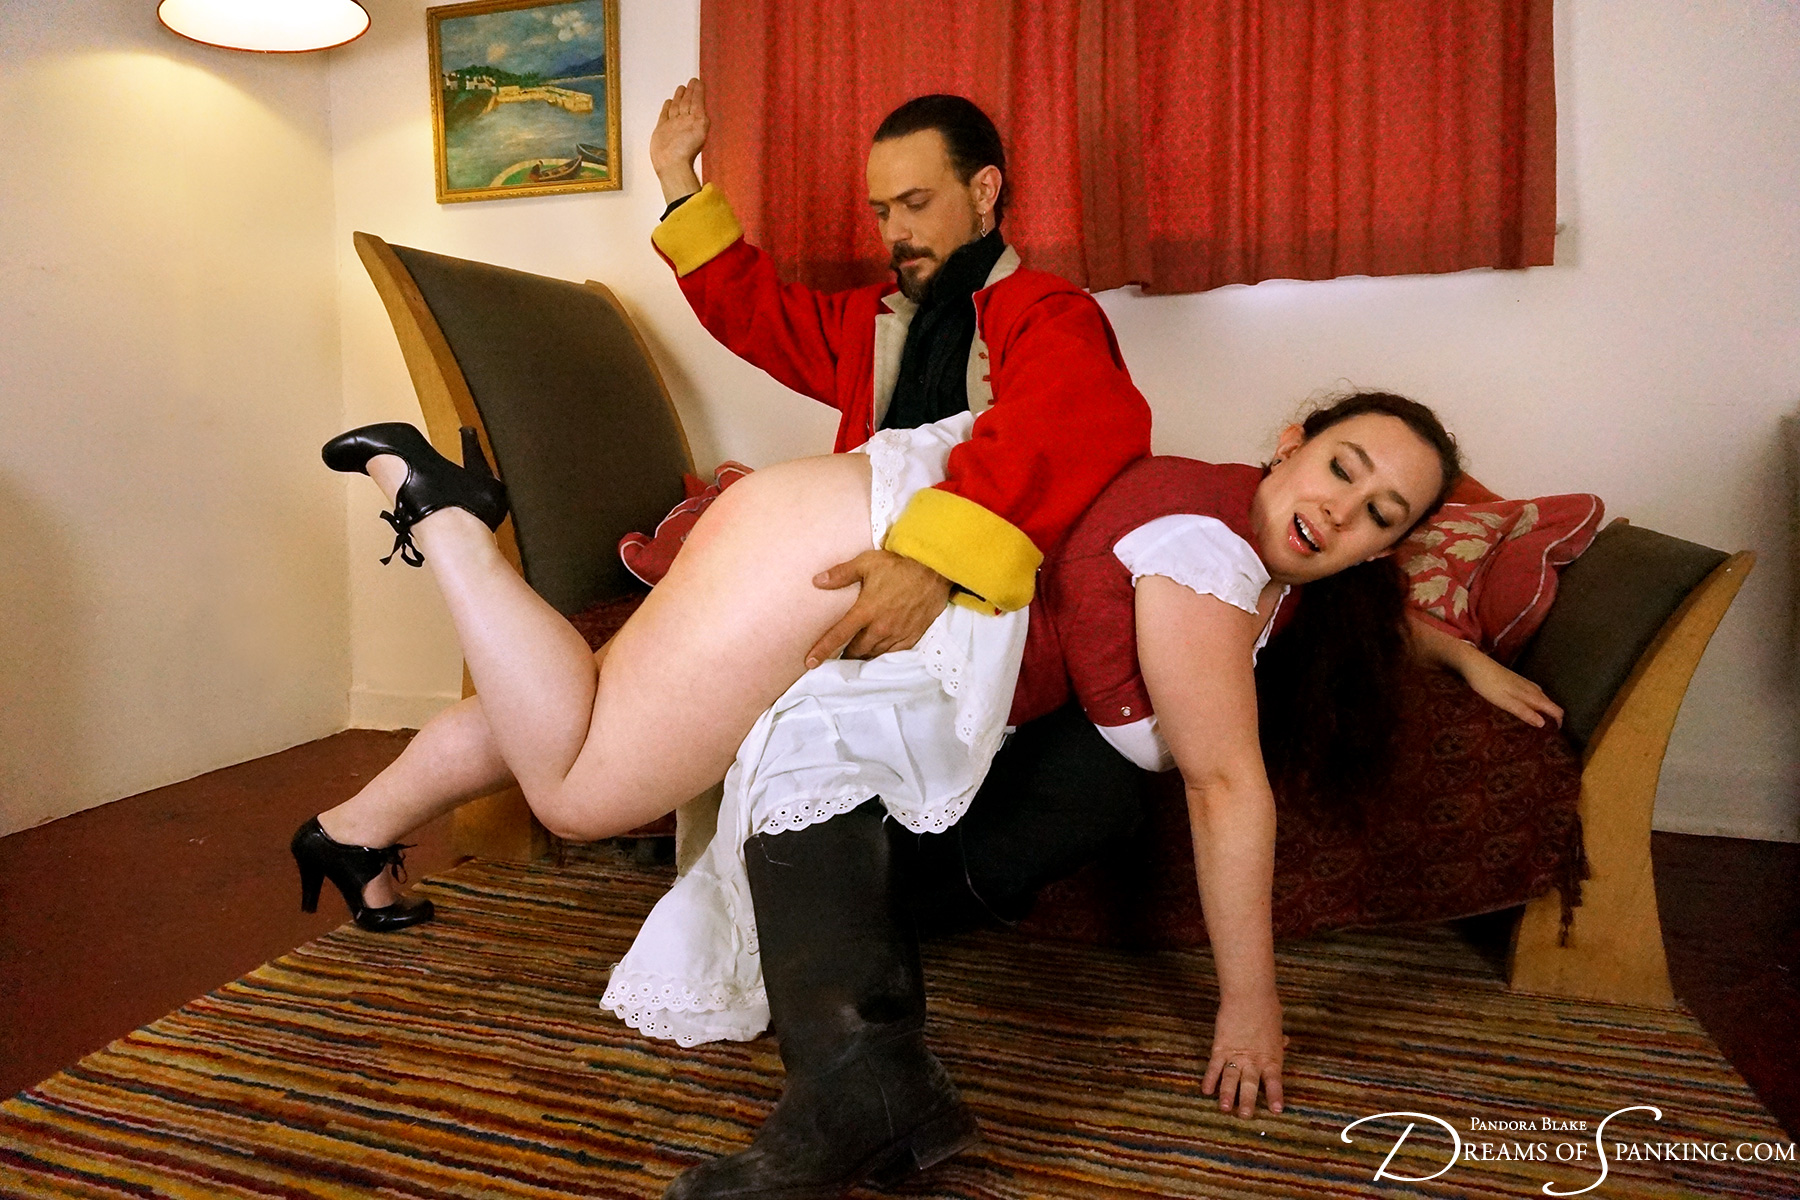 Historical spanking drama at Dreams of Spanking